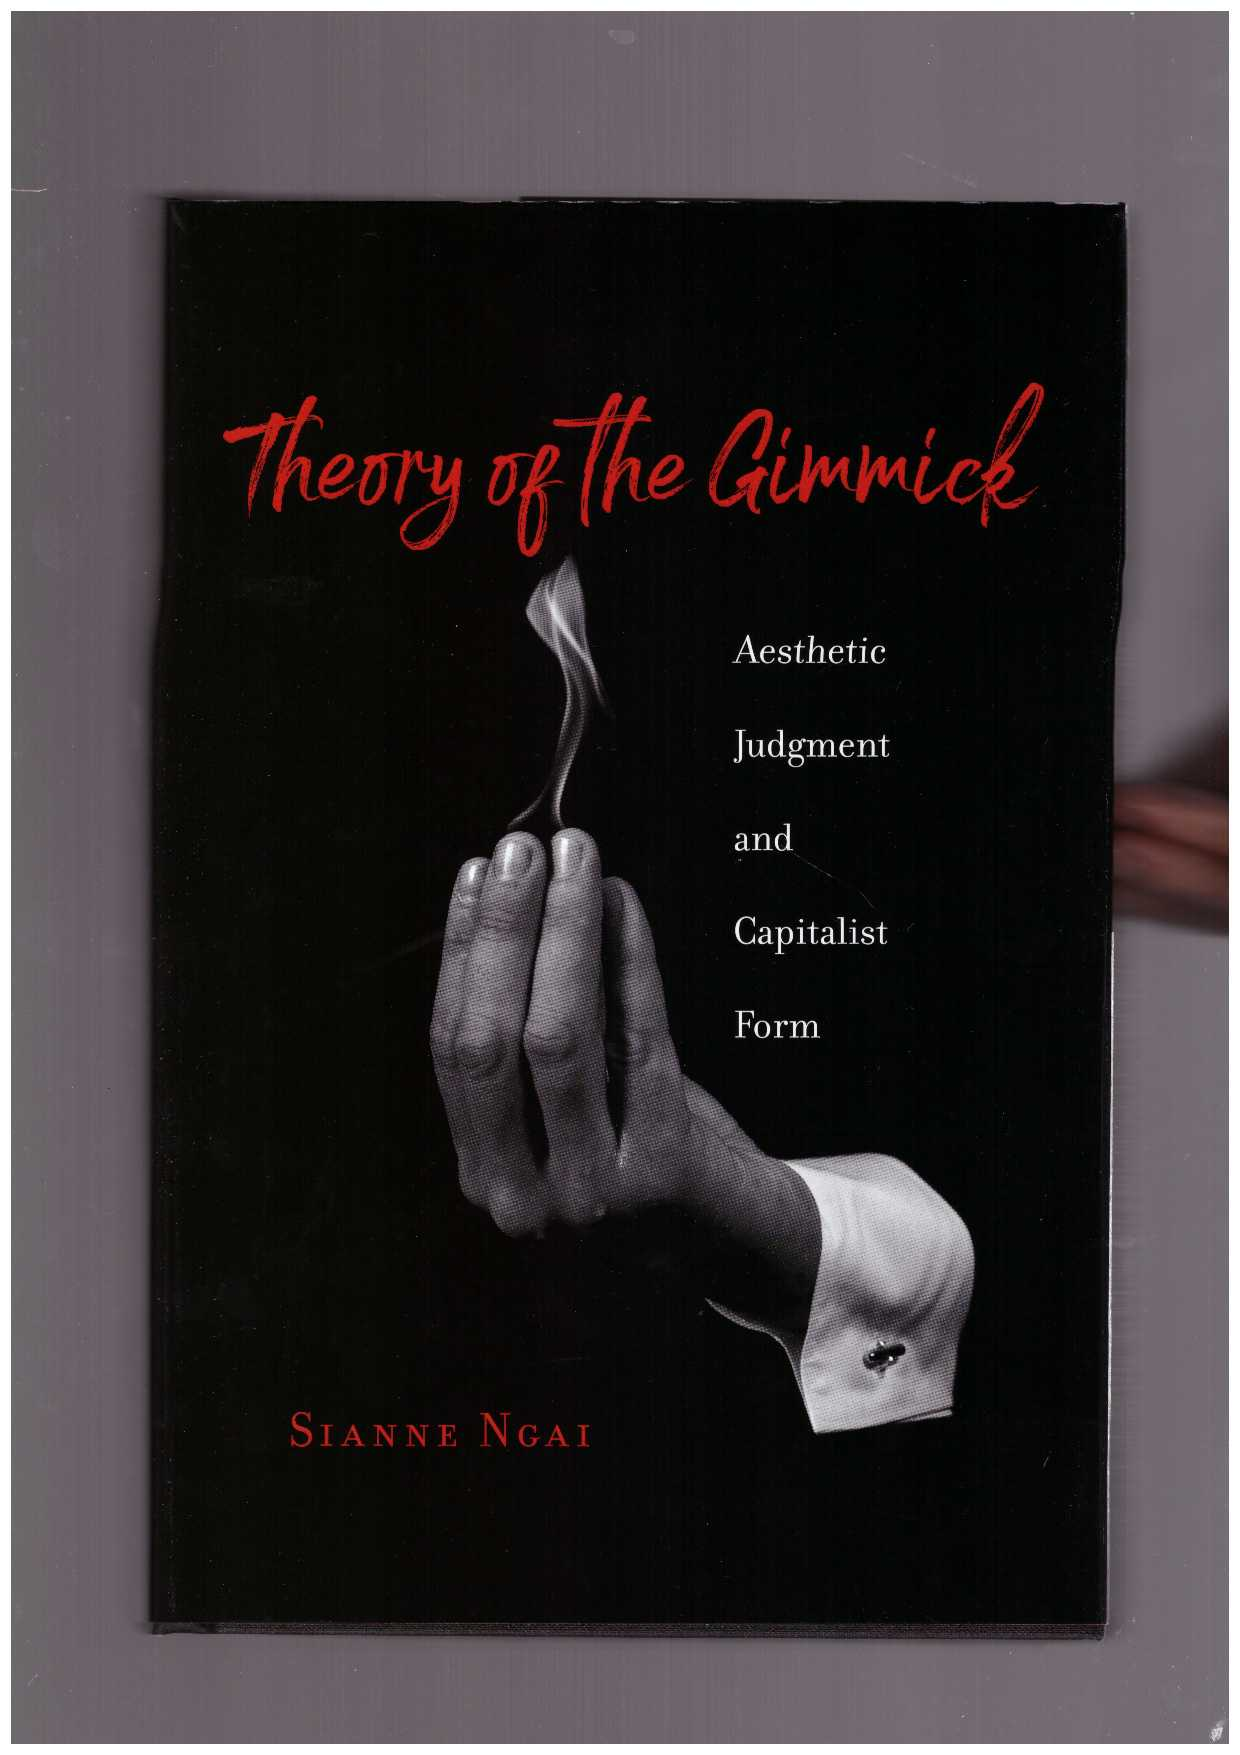 NGAI, Sianne  - Theory of the Gimmick. Aesthetic Judgment and Capitalist Form